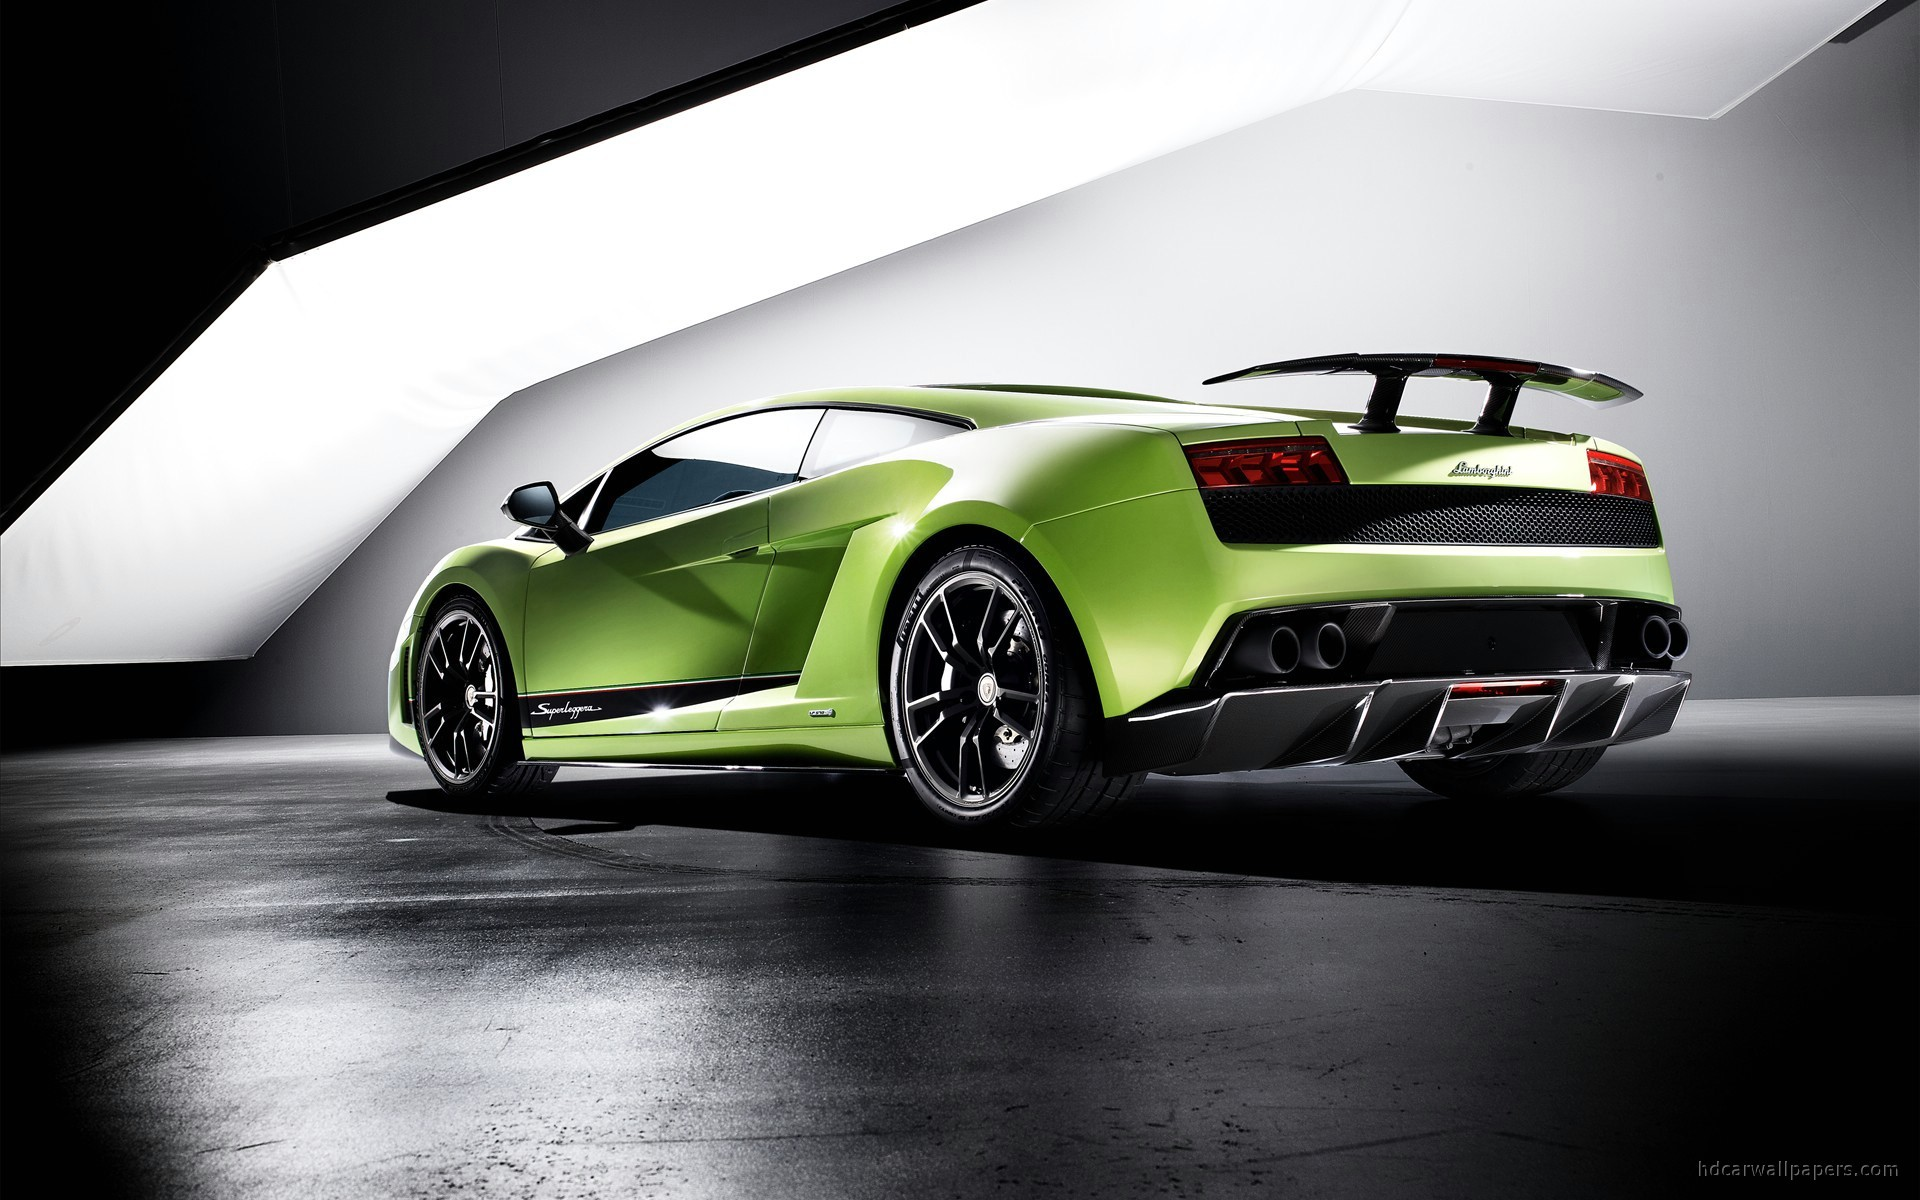 Res: 1920x1200, 2011 Lamborghini Gallardo LP 570 4 Superleggera 3